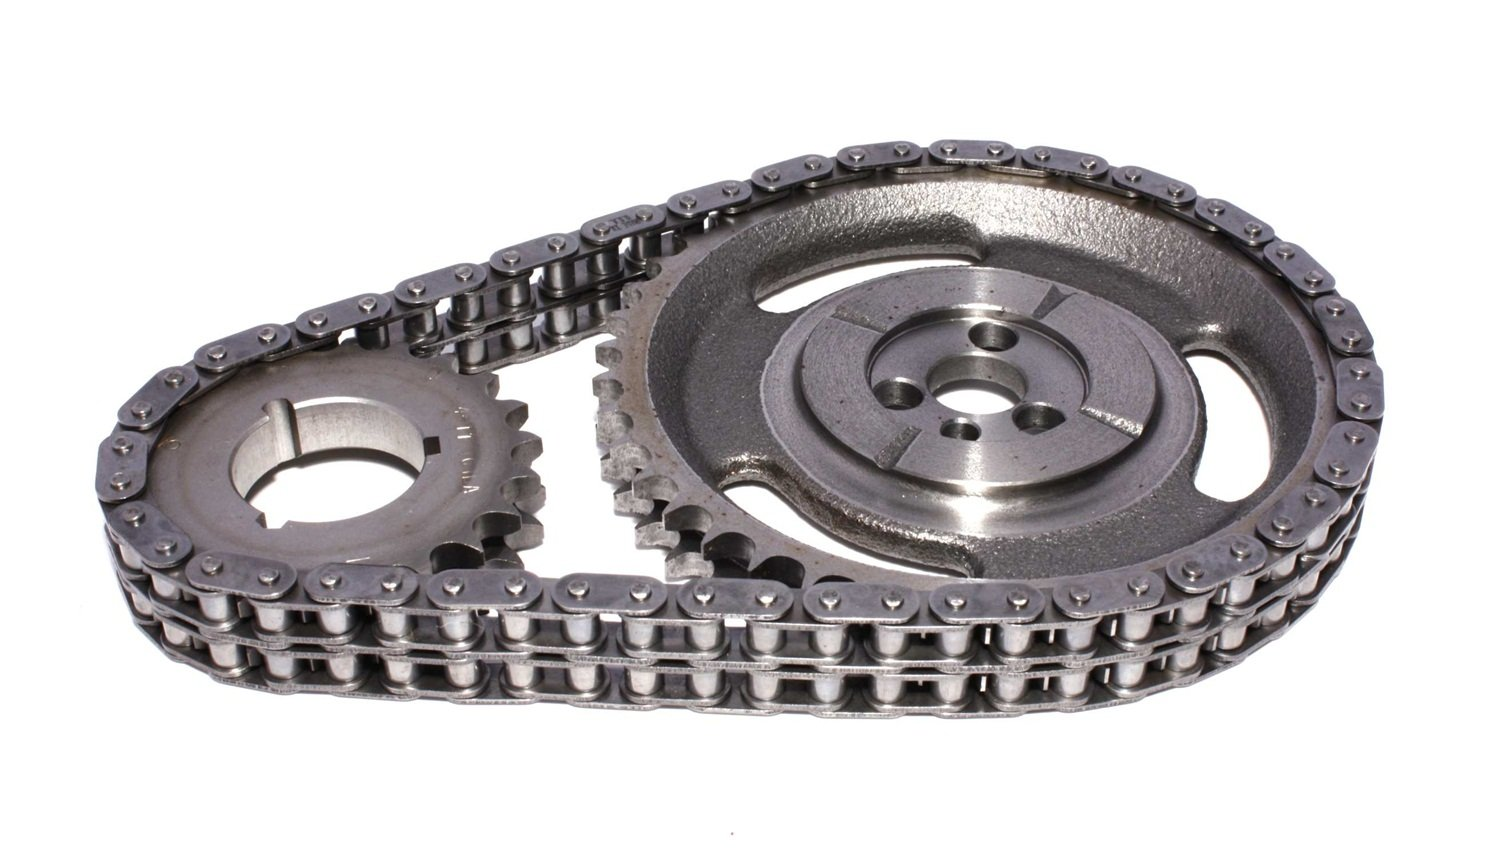 Competition Cams 3136 Hi-Tech Roller Race Timing Set for Small Block Chevrolet with factory roller cam COMP Cams